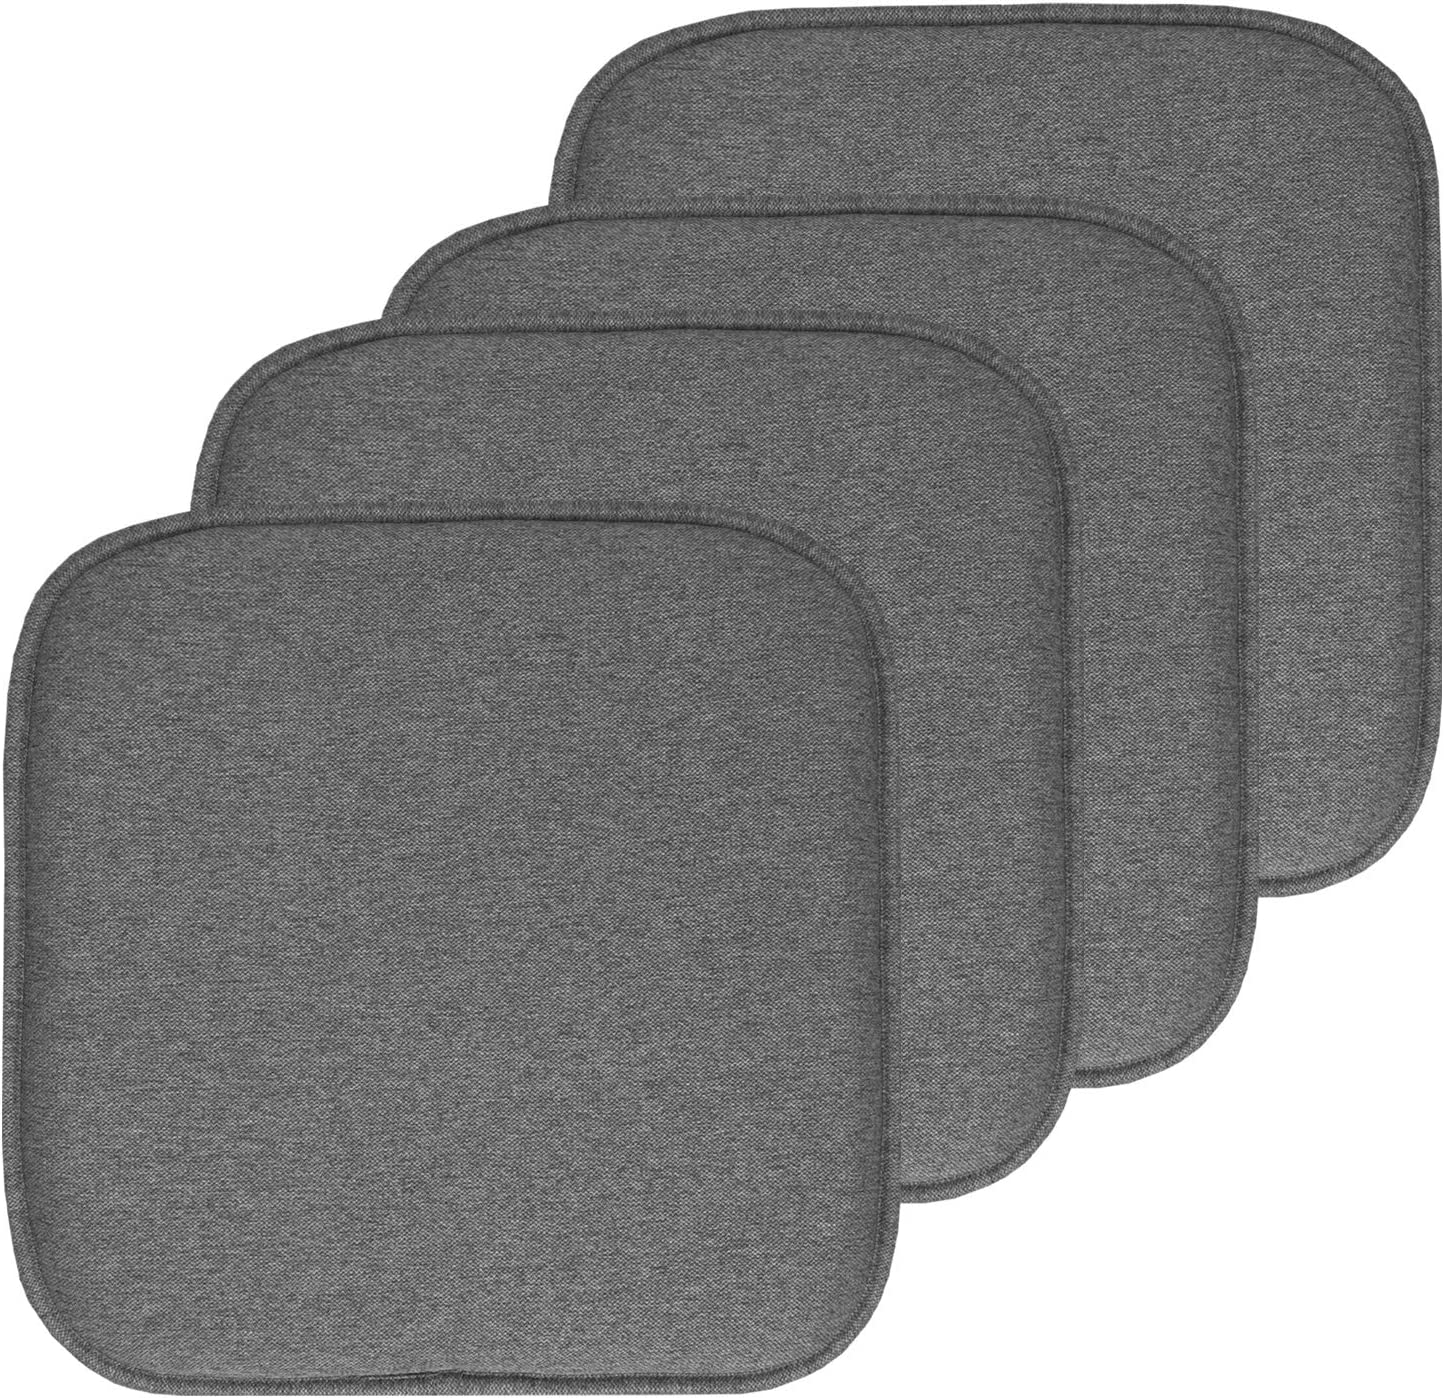 "Sweet Home Collection Chair Cushion Memory Foam Pads Honeycomb Pattern Slip Non Skid Rubber Back Rounded Square 16"" x 16"" Seat Cover, 4 Pack, Charlotte Gray"